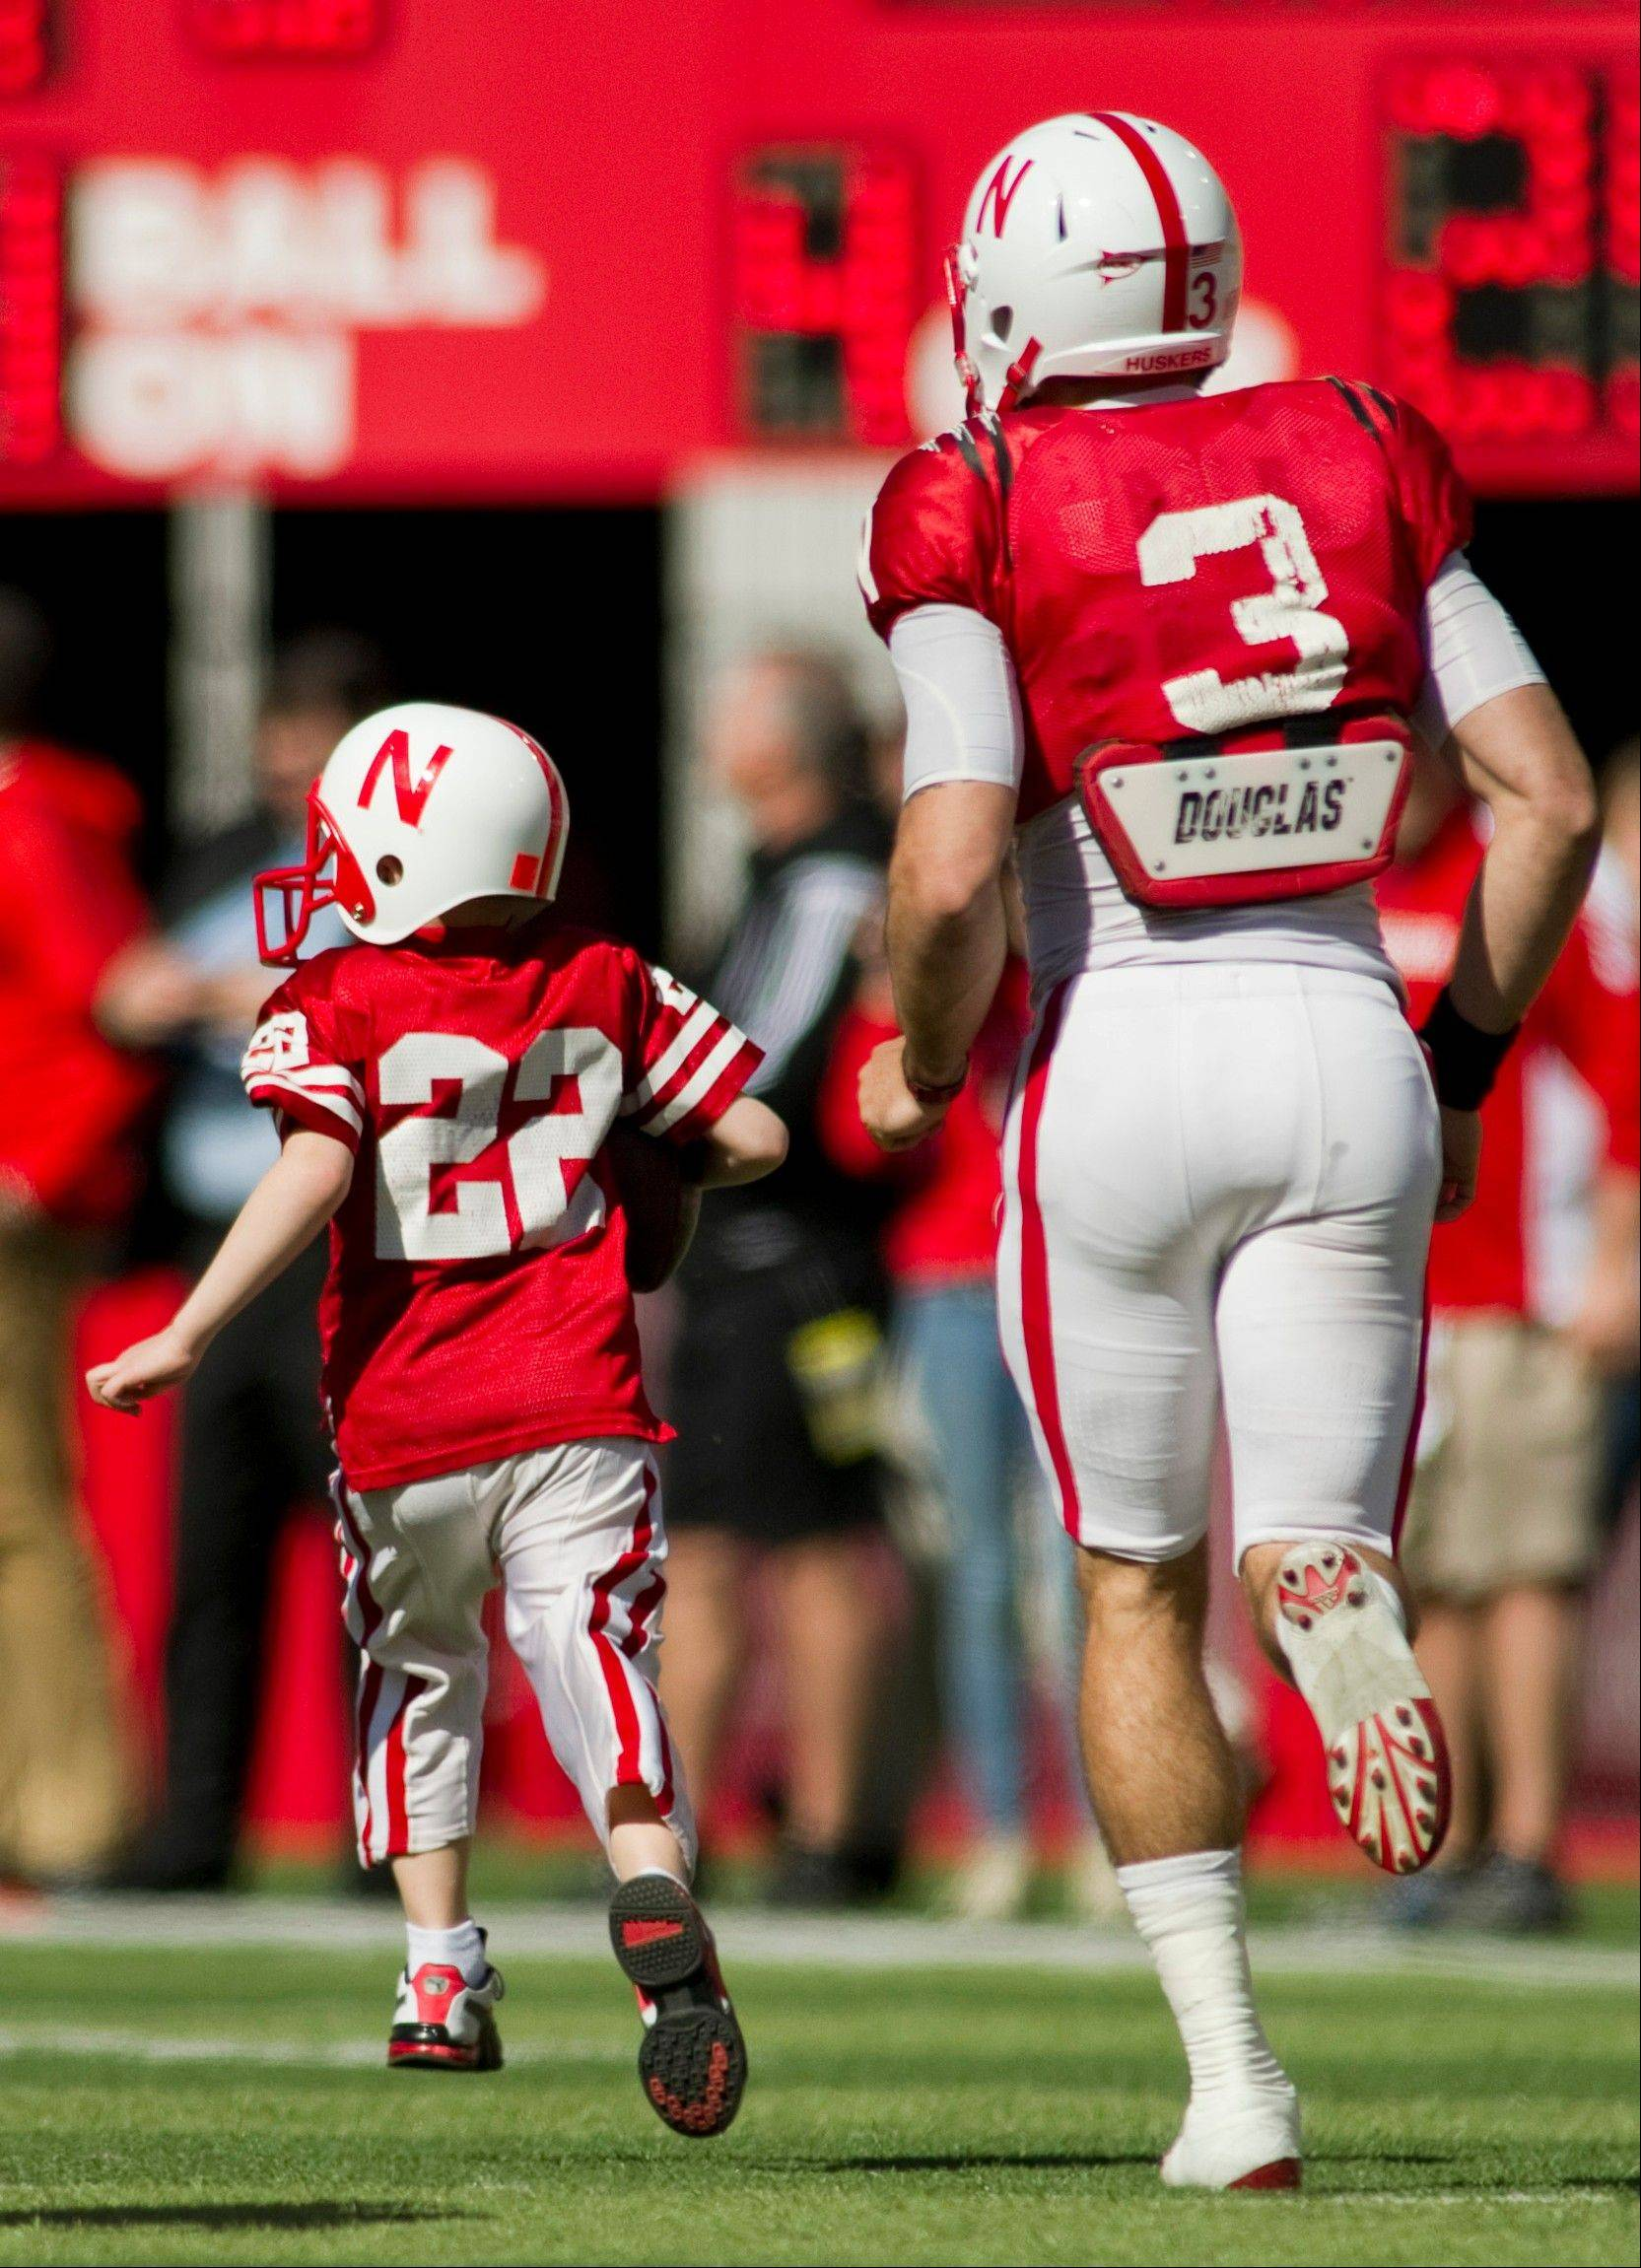 Nebraska�s Taylor Martinez (3) guides Jack Hoffman of Atkinson, Neb., down the field for his touchdown play during a special segment dedicated to Jack at the Red-White spring game at Memorial Stadium in Lincoln, Neb.